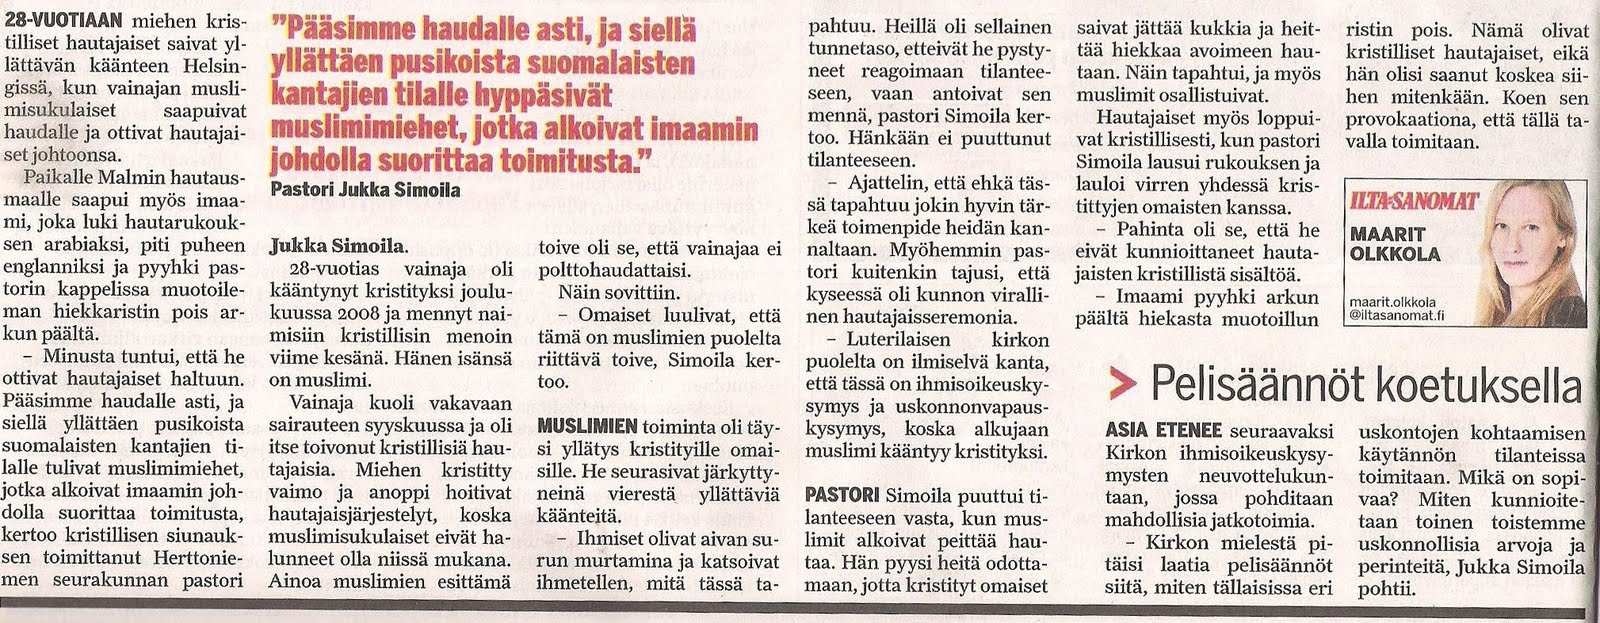 Originally published in Finnish tabloid paper Ilta Sanomat (28.12.2009, s. 8)